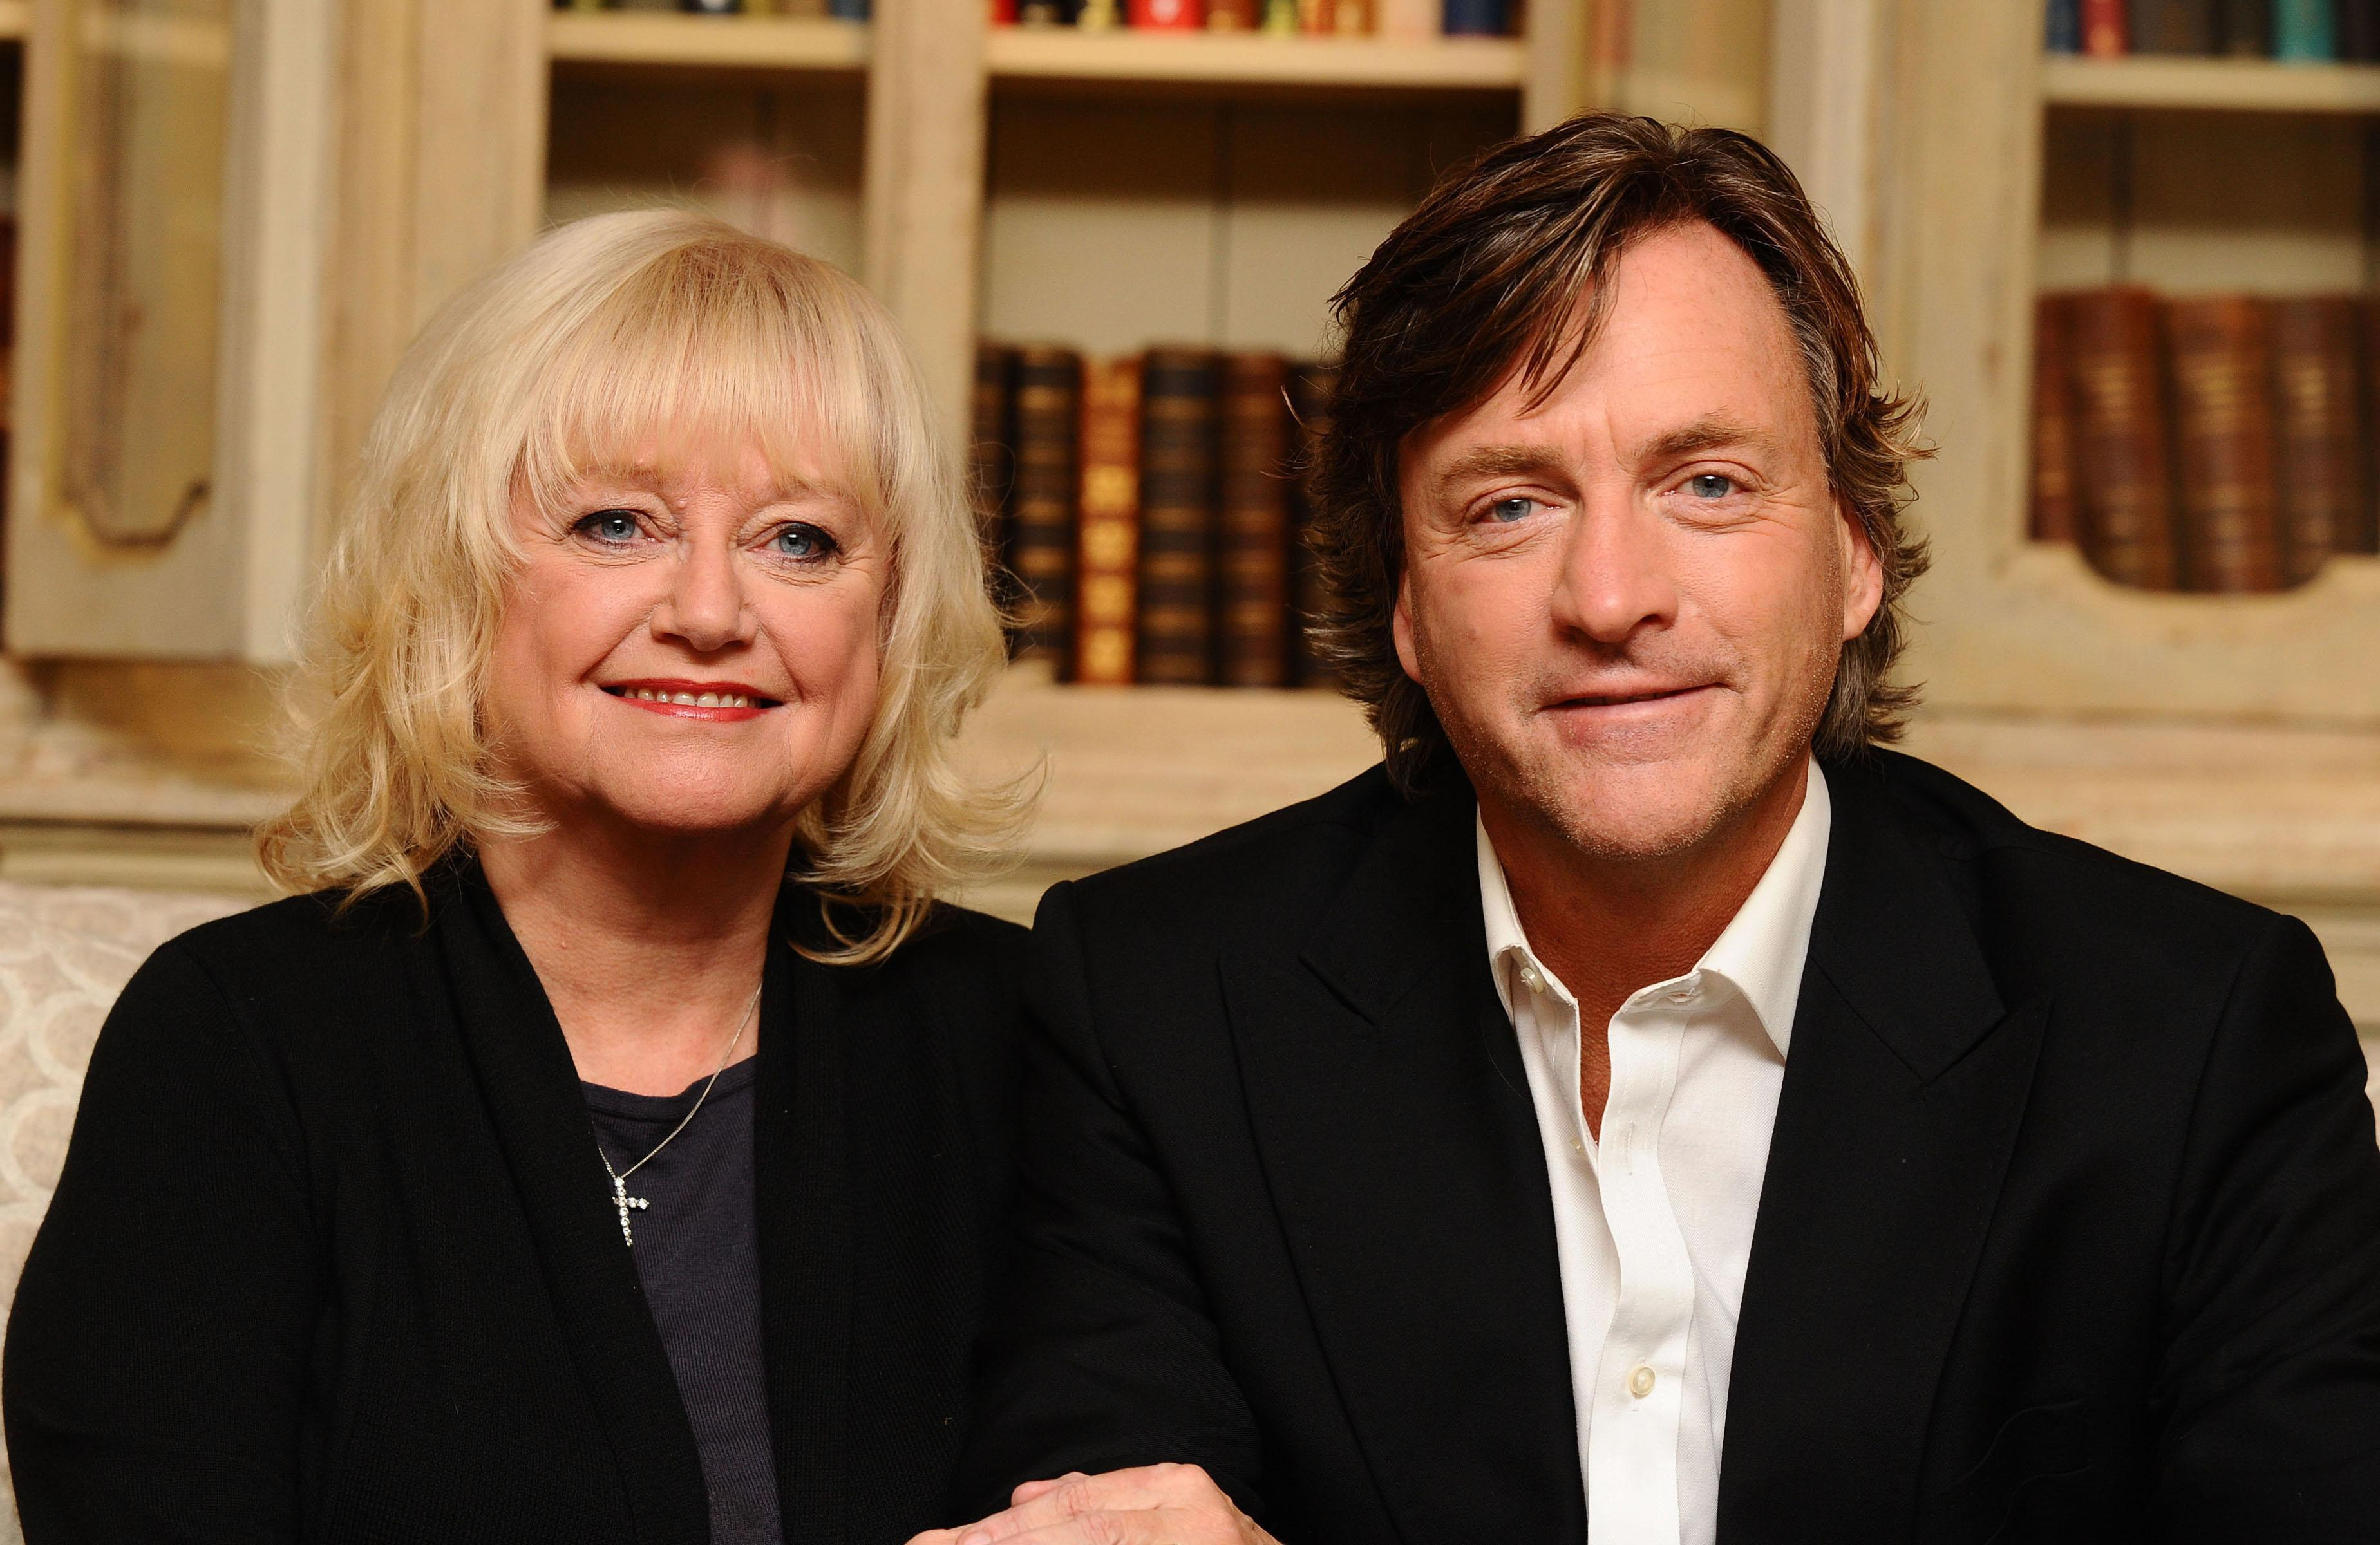 Viewers thrilled as 'legends' Richard and Judy return to 'This Morning'